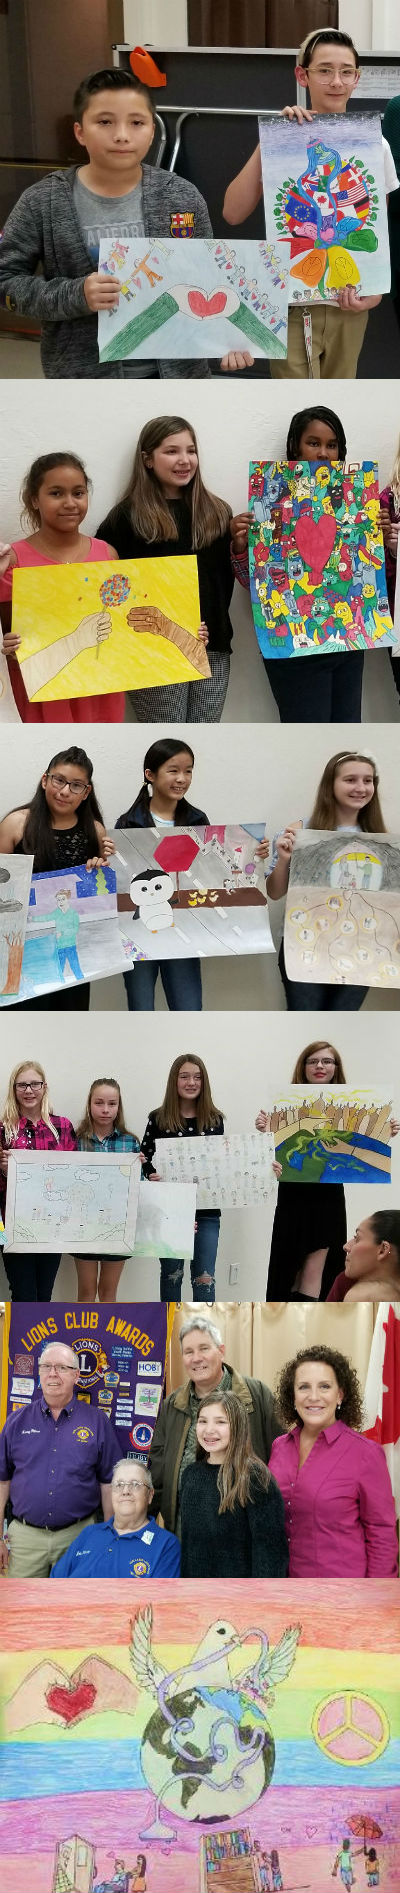 Sun Lakes Lions Club Peace Poster Contest Winners